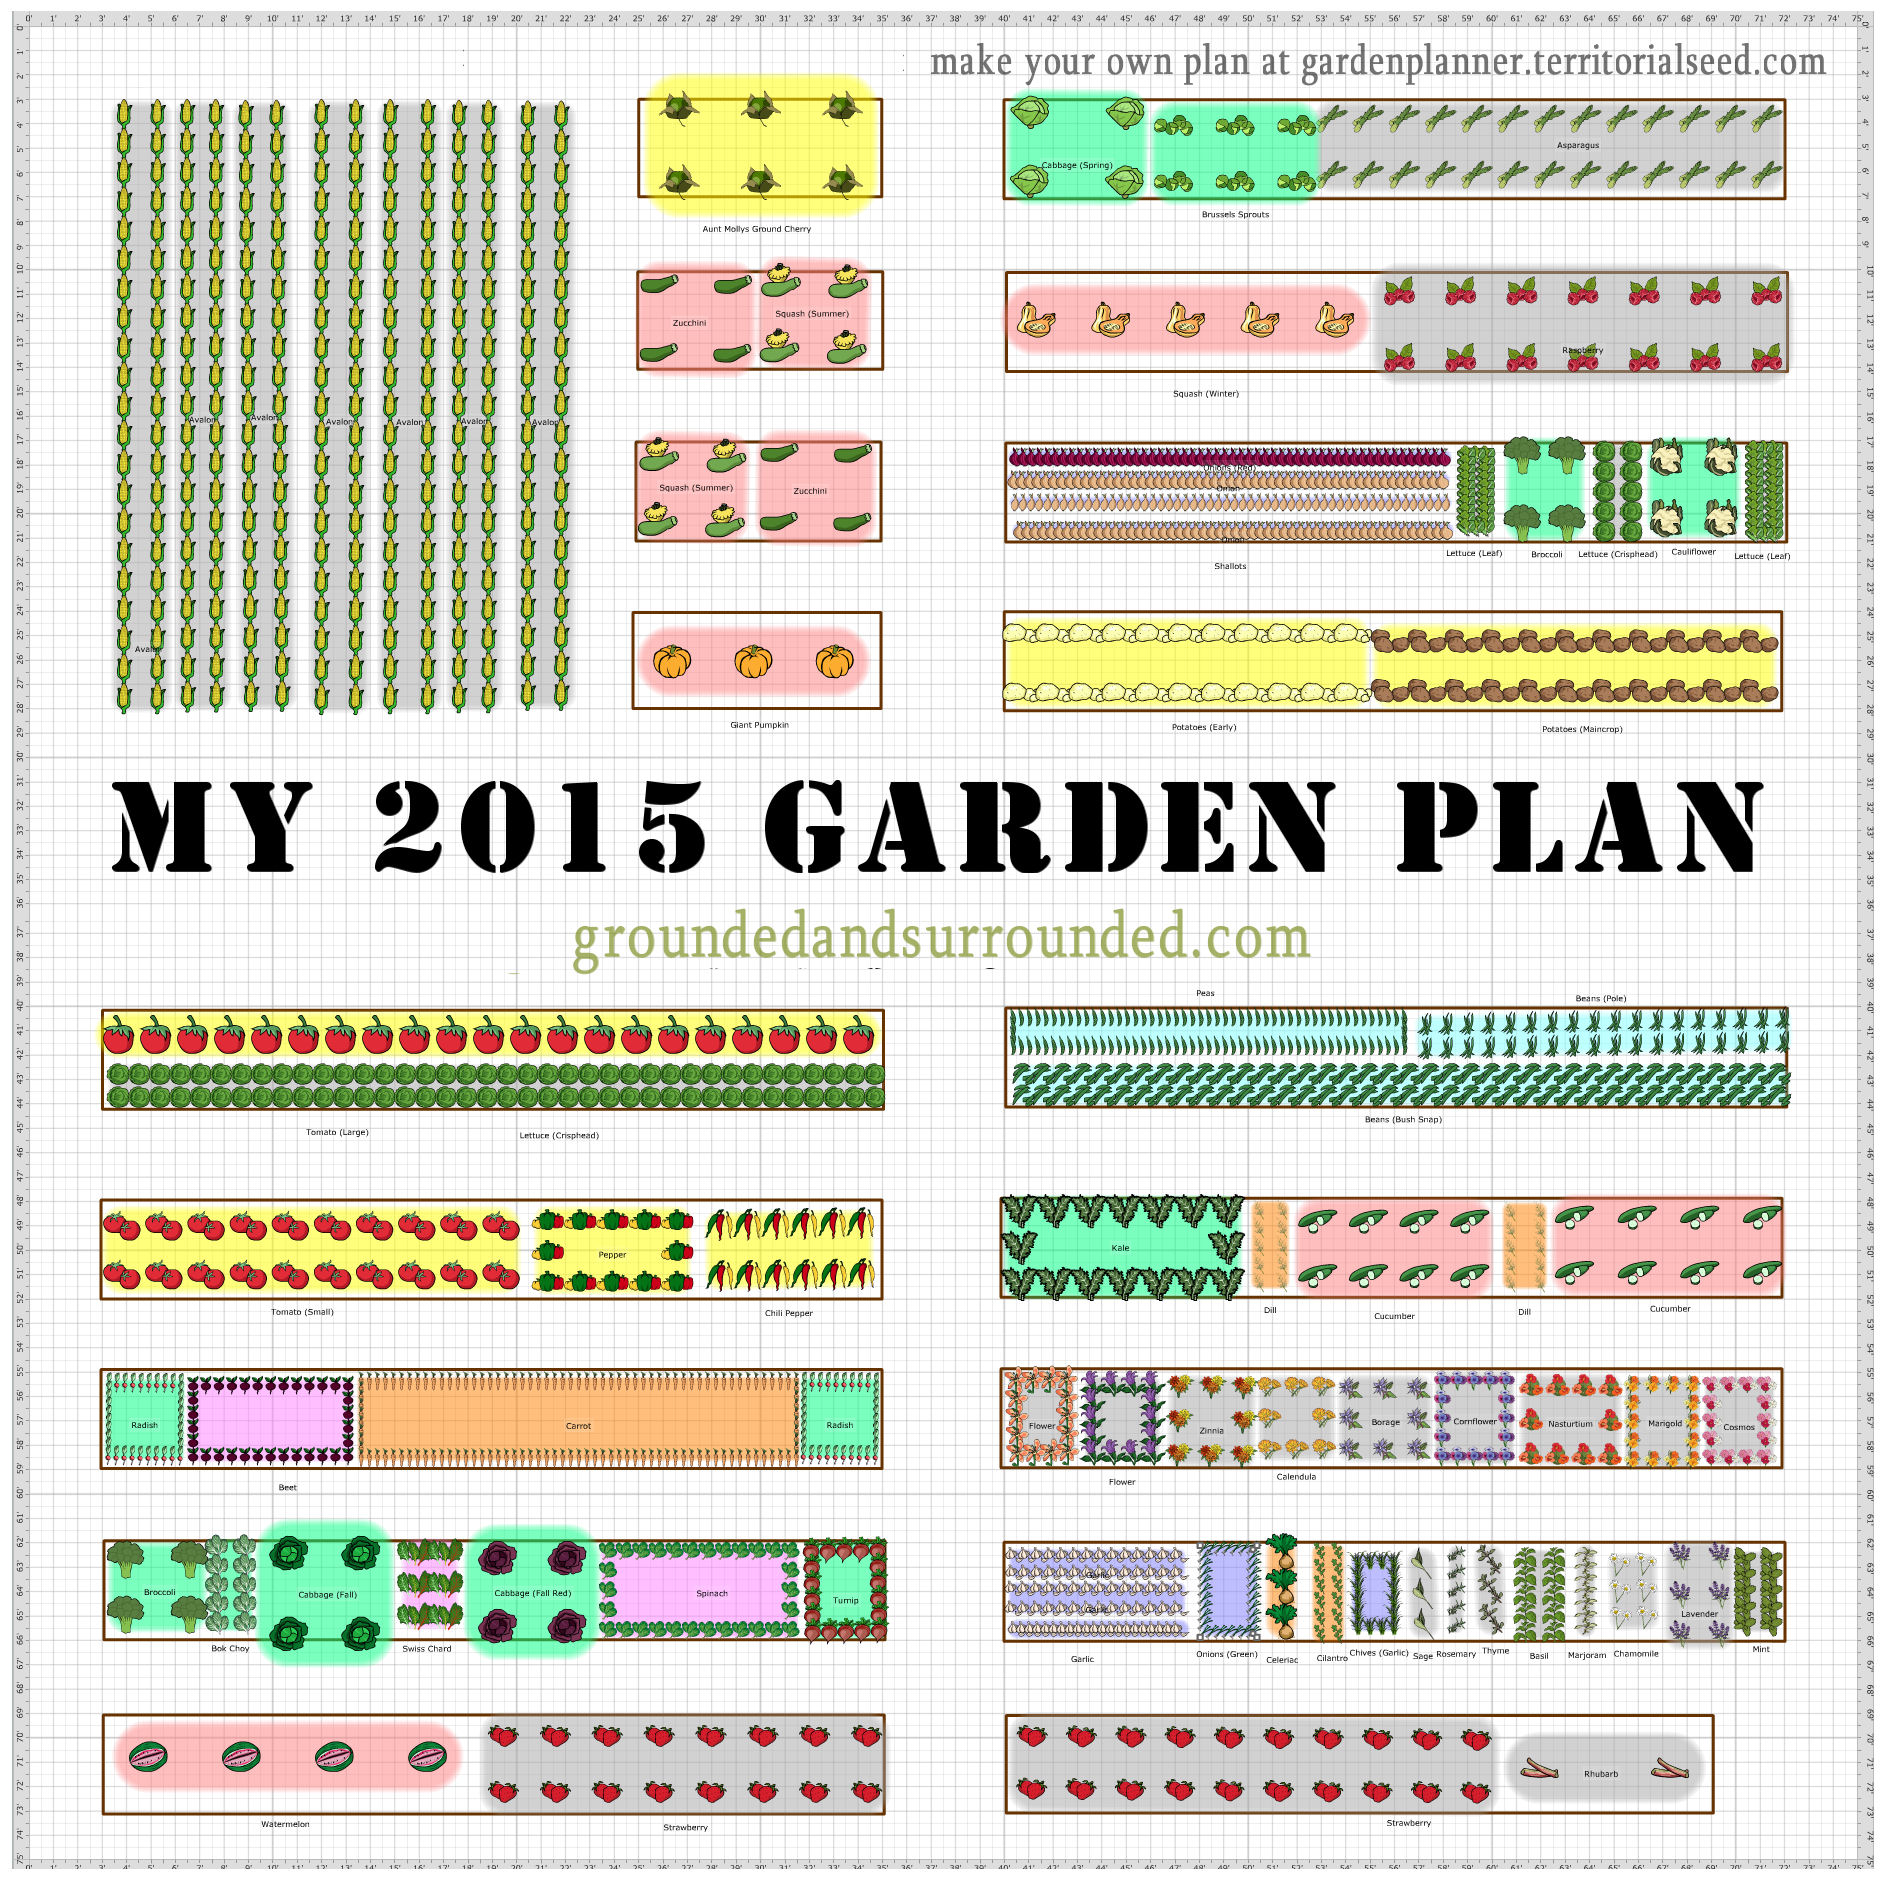 My 5 000 sq ft vegetable garden plan grounded surrounded for Vegetable garden design plans